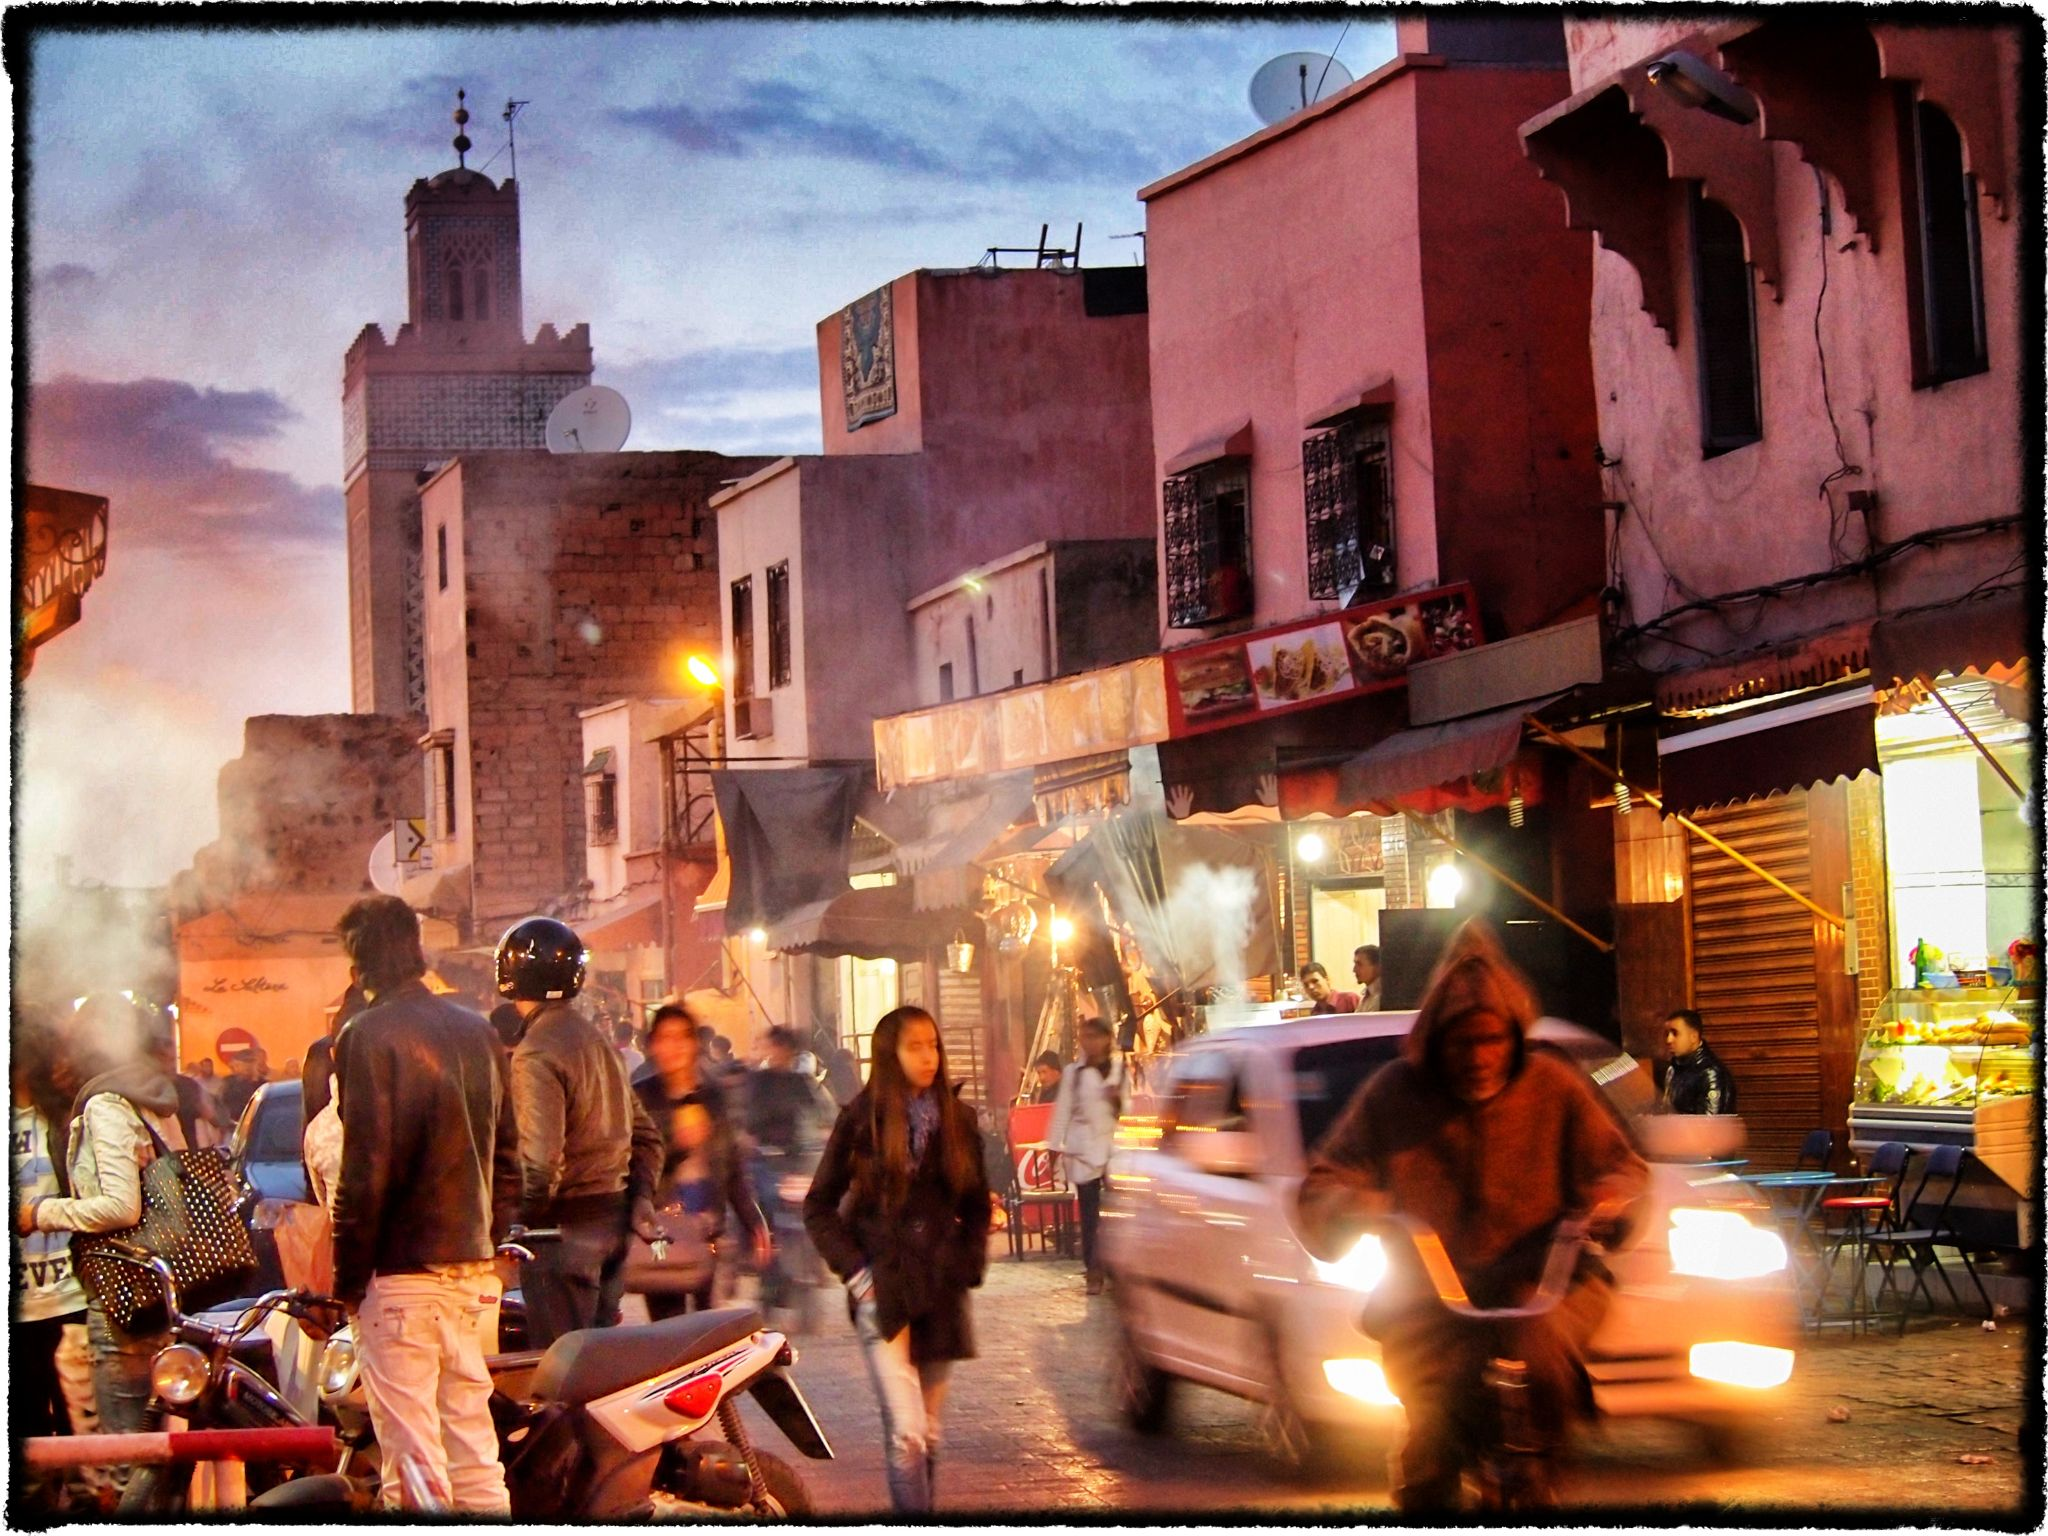 Impressions of the Souk at dusk by DavidNorfolk